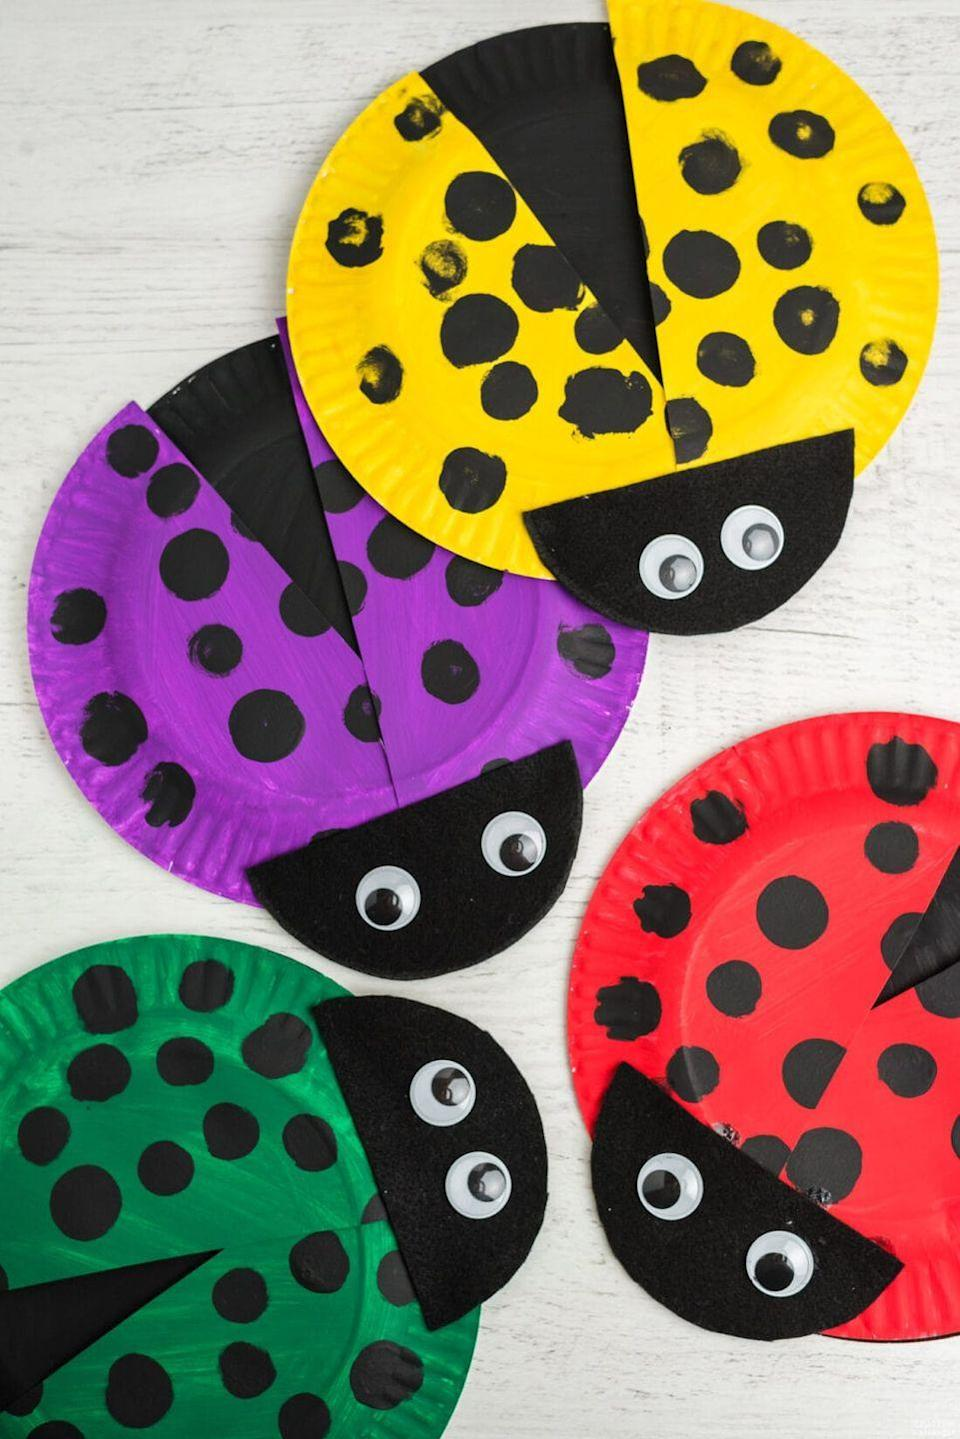 """<p>As long as you have paper plates, googly eyes, felt, and acrylic paint, then you have a way to keep kids amused for 30 minutes while they make little ladybugs. </p><p><strong><em><a href=""""https://craftsbyamanda.com/paper-plate-lady-bugs/"""" rel=""""nofollow noopener"""" target=""""_blank"""" data-ylk=""""slk:Get the tutorial at Crafts by Amanda"""" class=""""link rapid-noclick-resp"""">Get the tutorial at Crafts by Amanda</a>. </em></strong></p><p><a class=""""link rapid-noclick-resp"""" href=""""https://www.amazon.com/Nonwoven-Patchwork-Costumes-Classrooms-Parties/dp/B0848X13G8?tag=syn-yahoo-20&ascsubtag=%5Bartid%7C10070.g.37055924%5Bsrc%7Cyahoo-us"""" rel=""""nofollow noopener"""" target=""""_blank"""" data-ylk=""""slk:SHOP FELT"""">SHOP FELT</a></p>"""